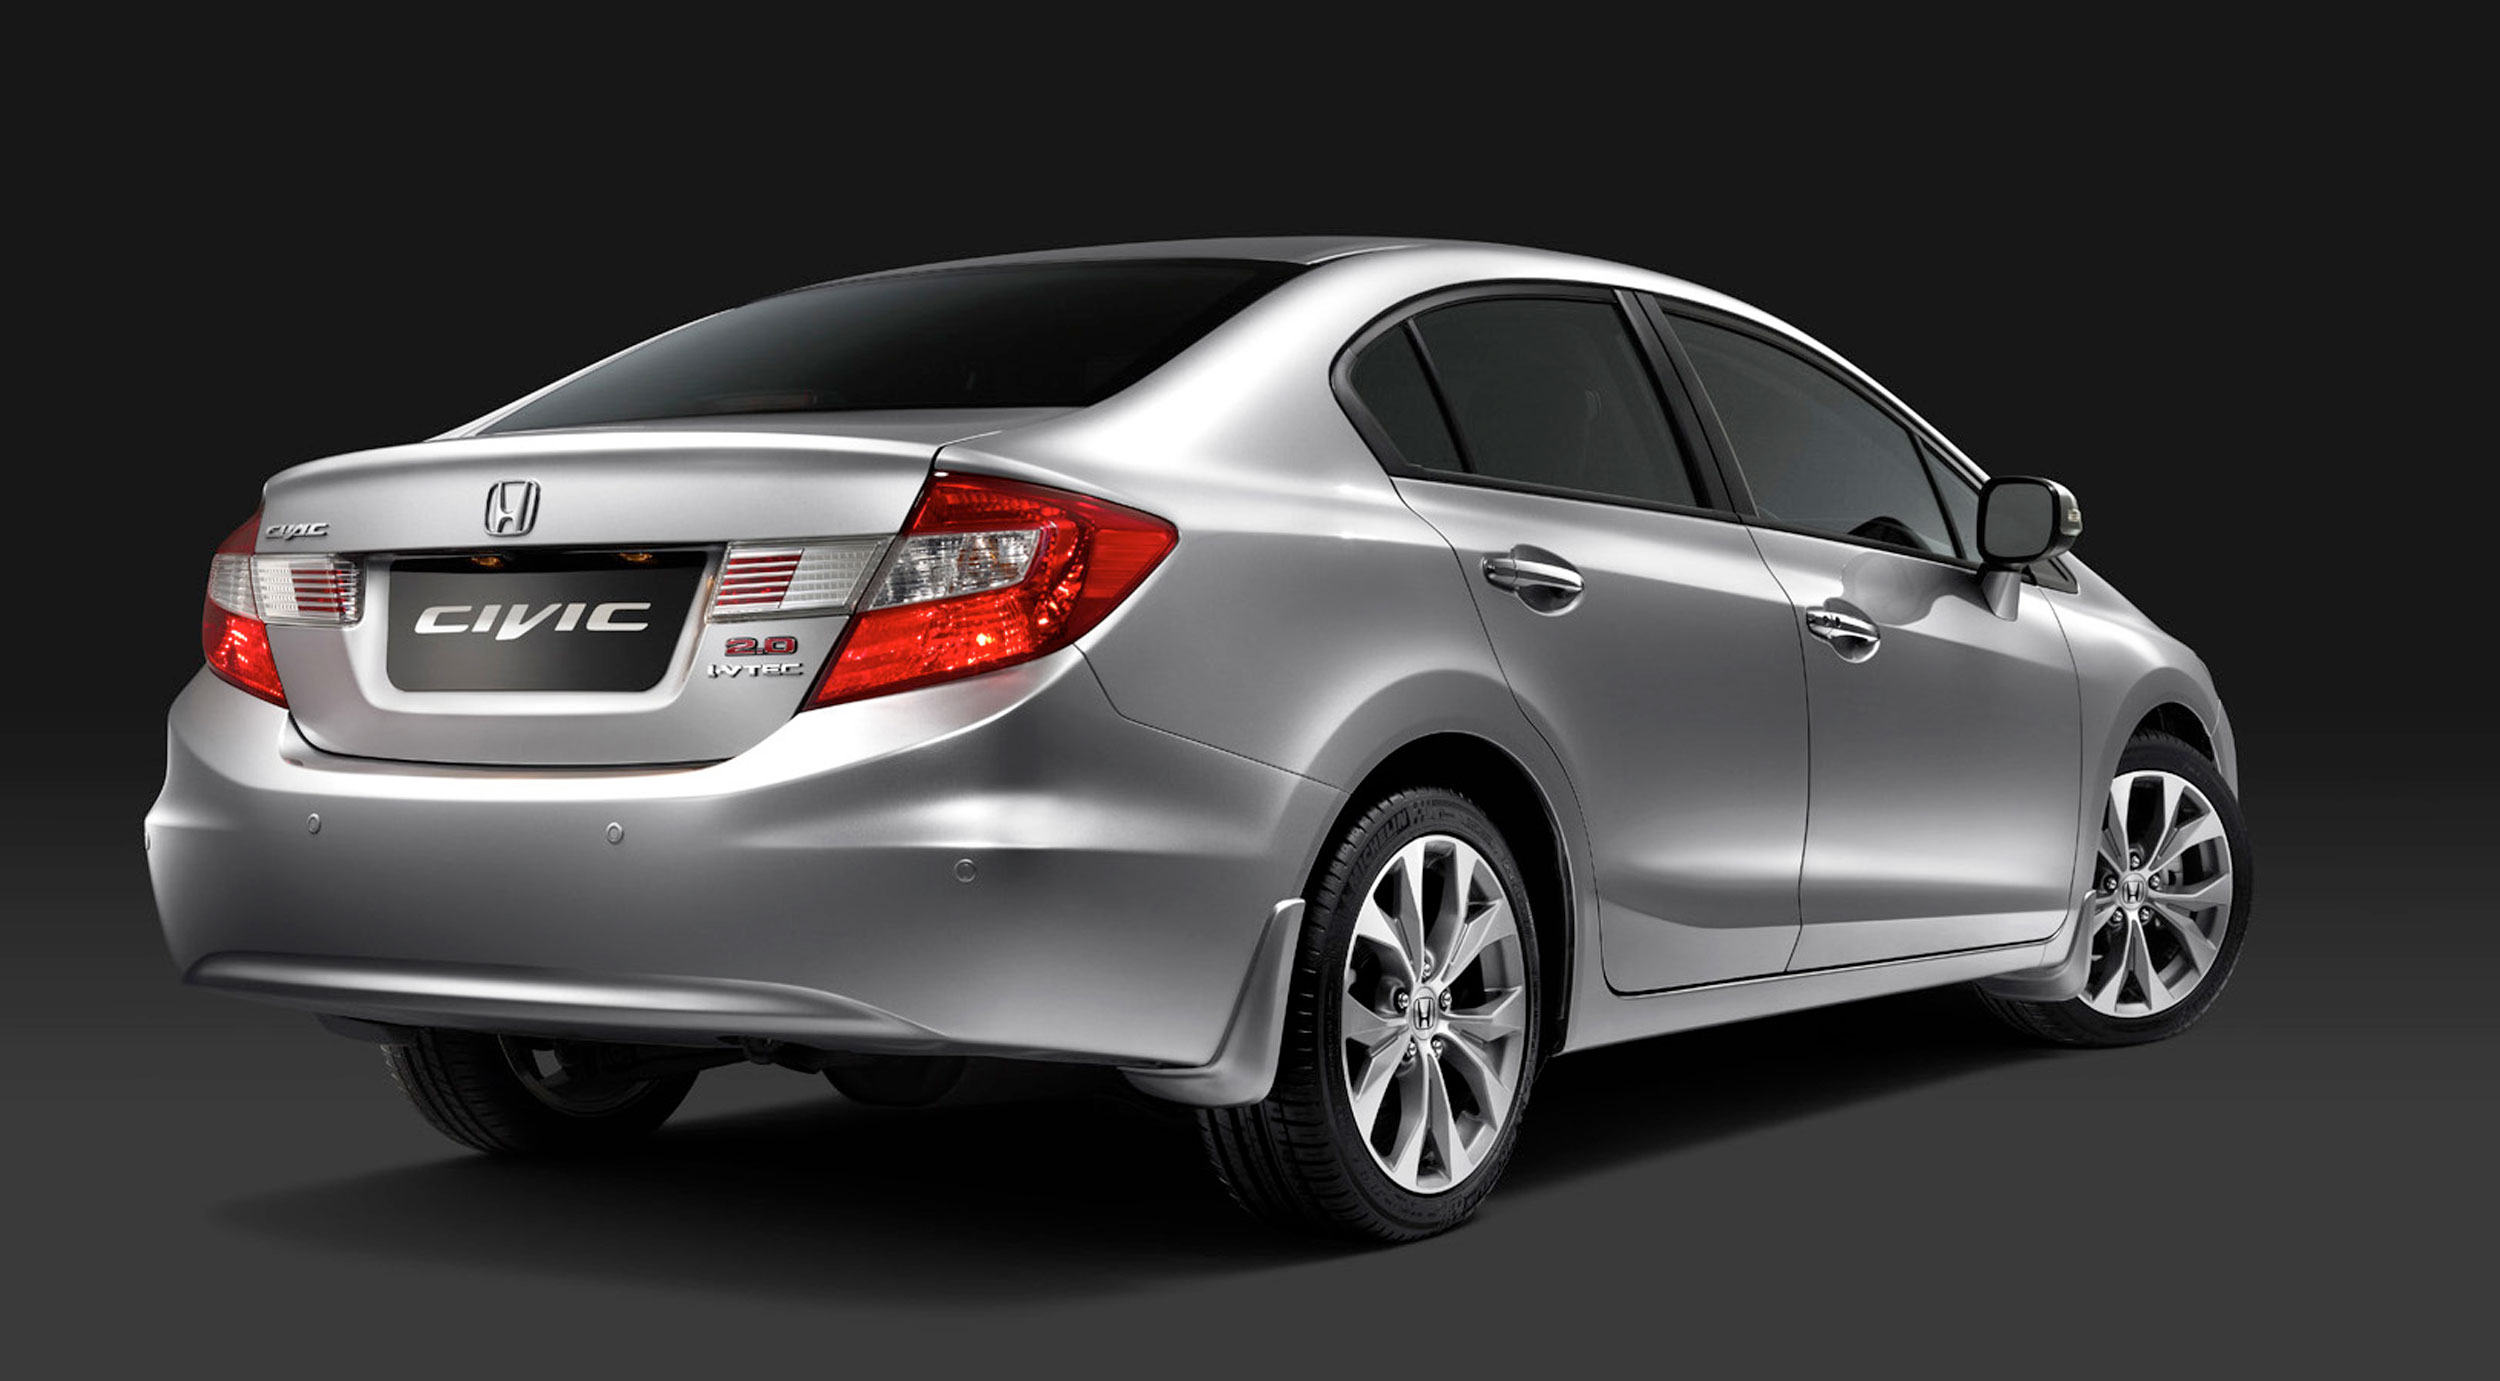 Honda Civic 2016 Exterior Rear Side View